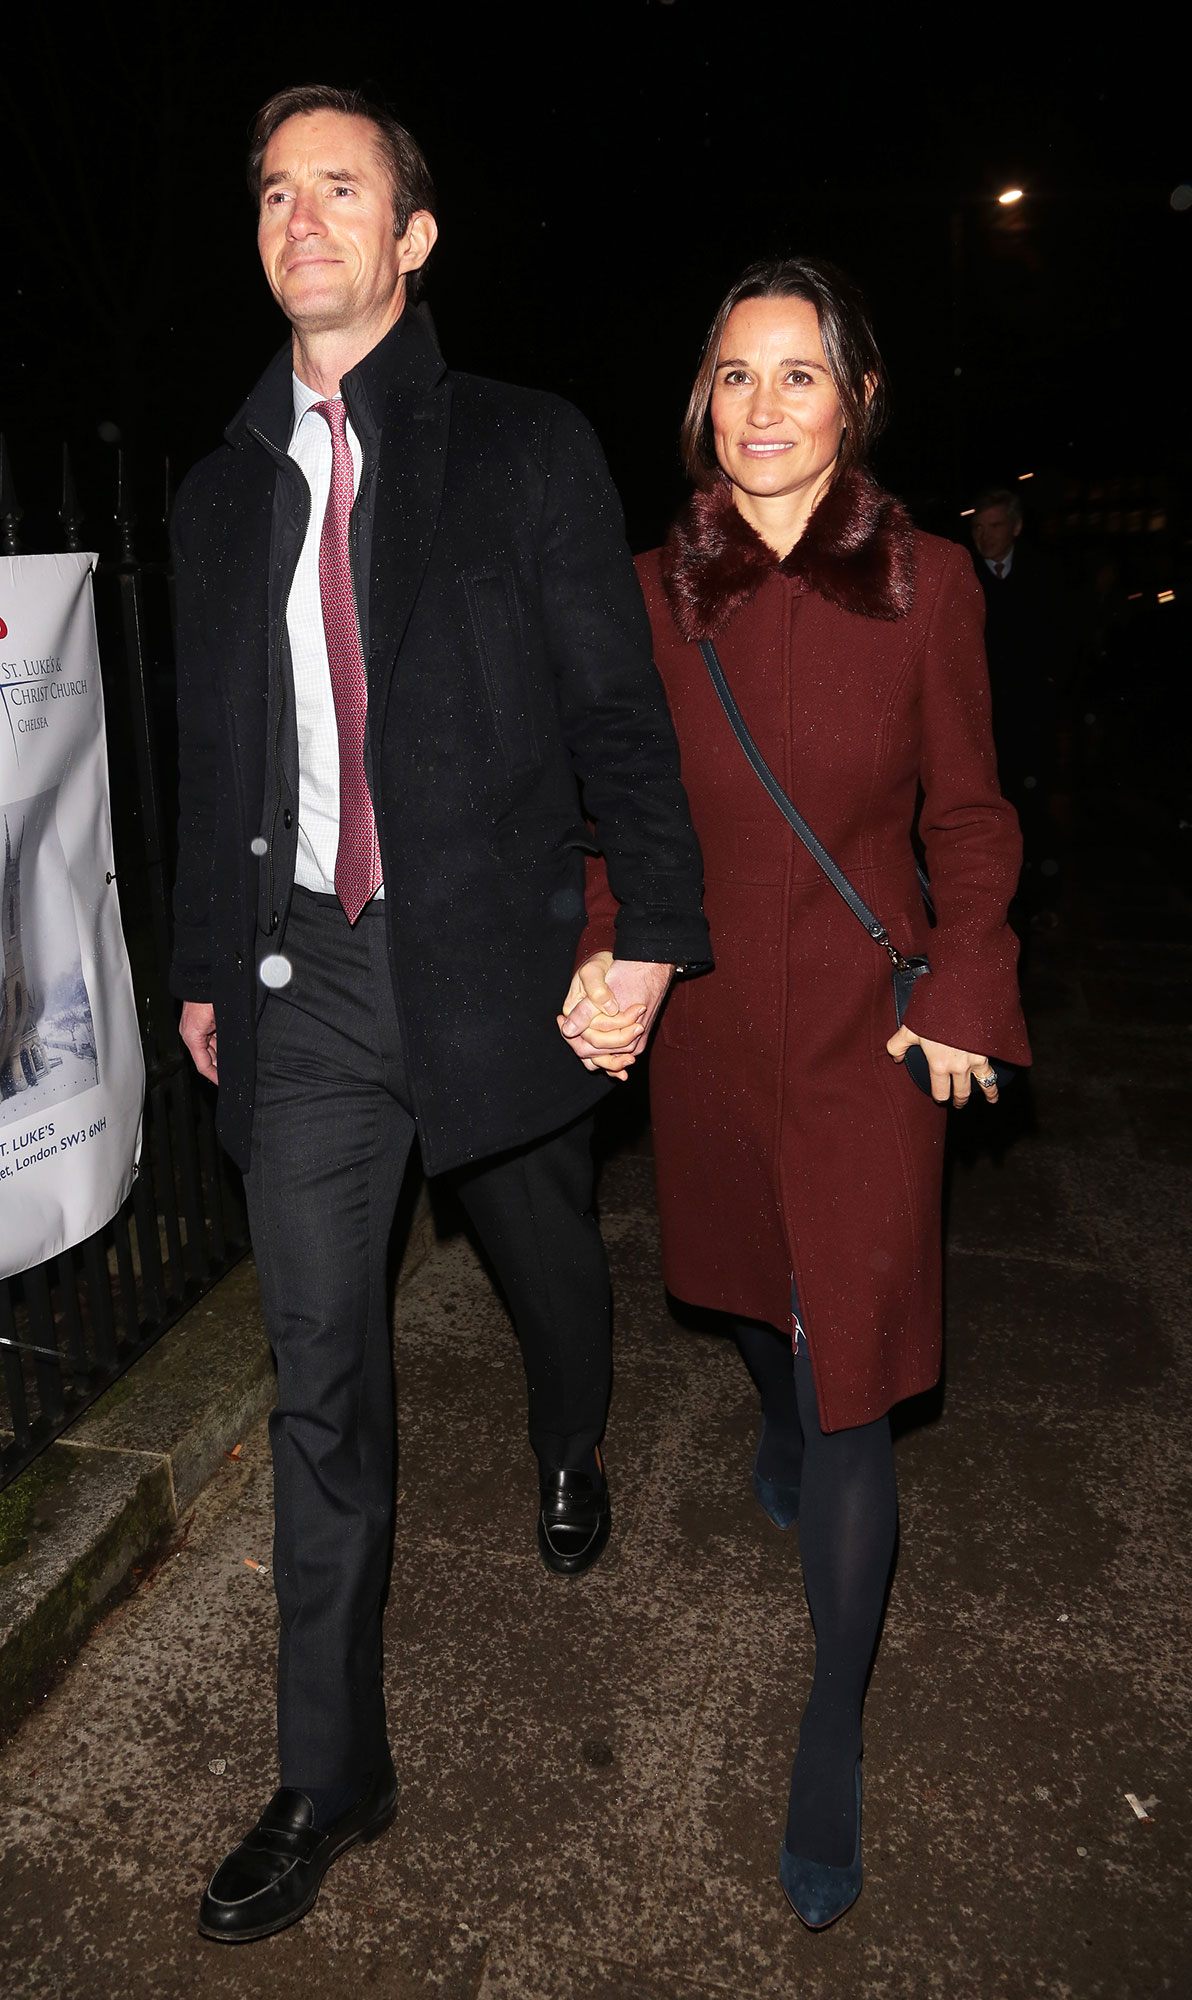 How Pippa Middleton Lost All Her Baby Weight in Less Than Three Months - Pippa Middleton and James Matthews leaving St Lukes Church after a carol service on December 04, 2018 in London, England.